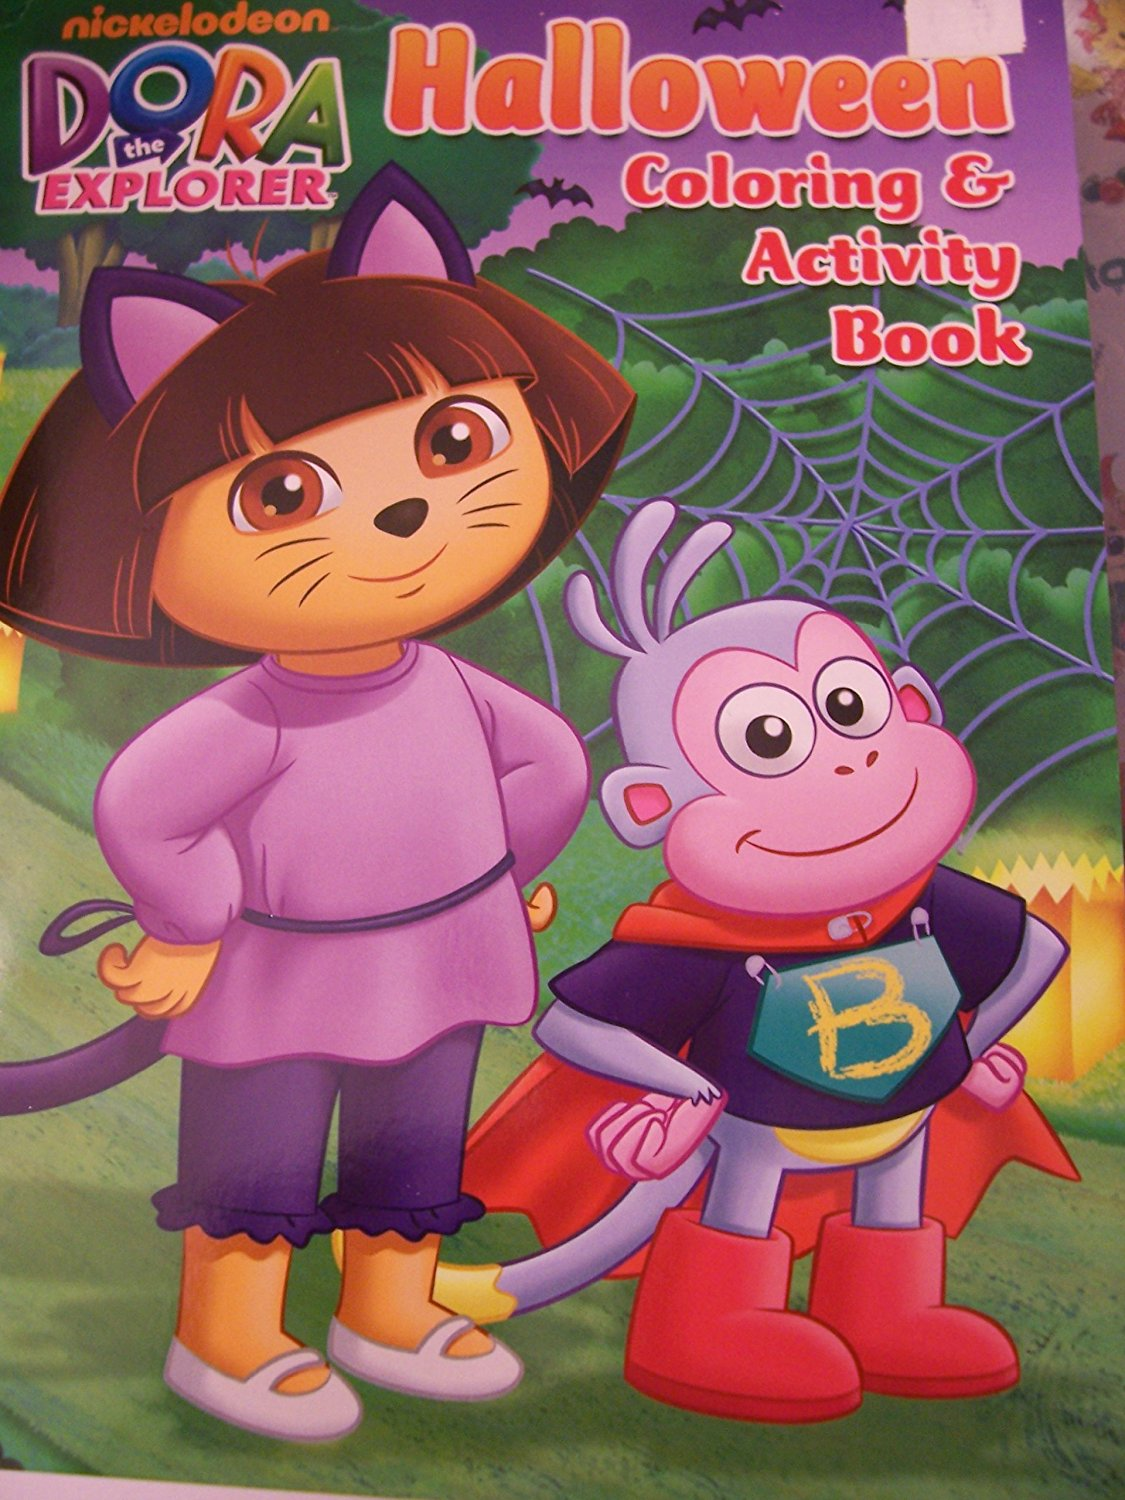 Dora The Explorer Holiday Coloring Activity Book Halloween Catwoman Boots Batman